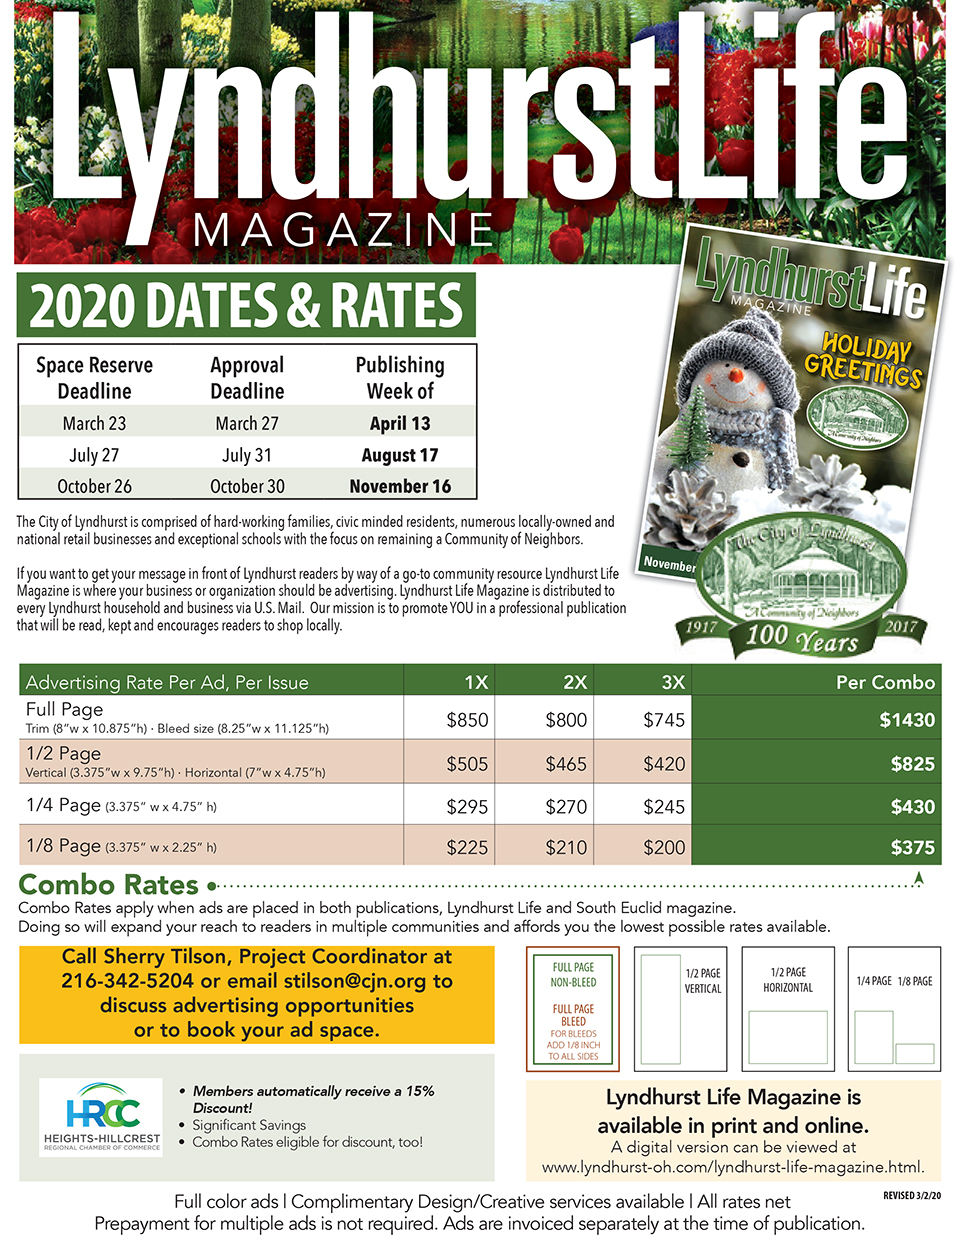 Lyndhurst Life Magazine 2020 Rate Card.